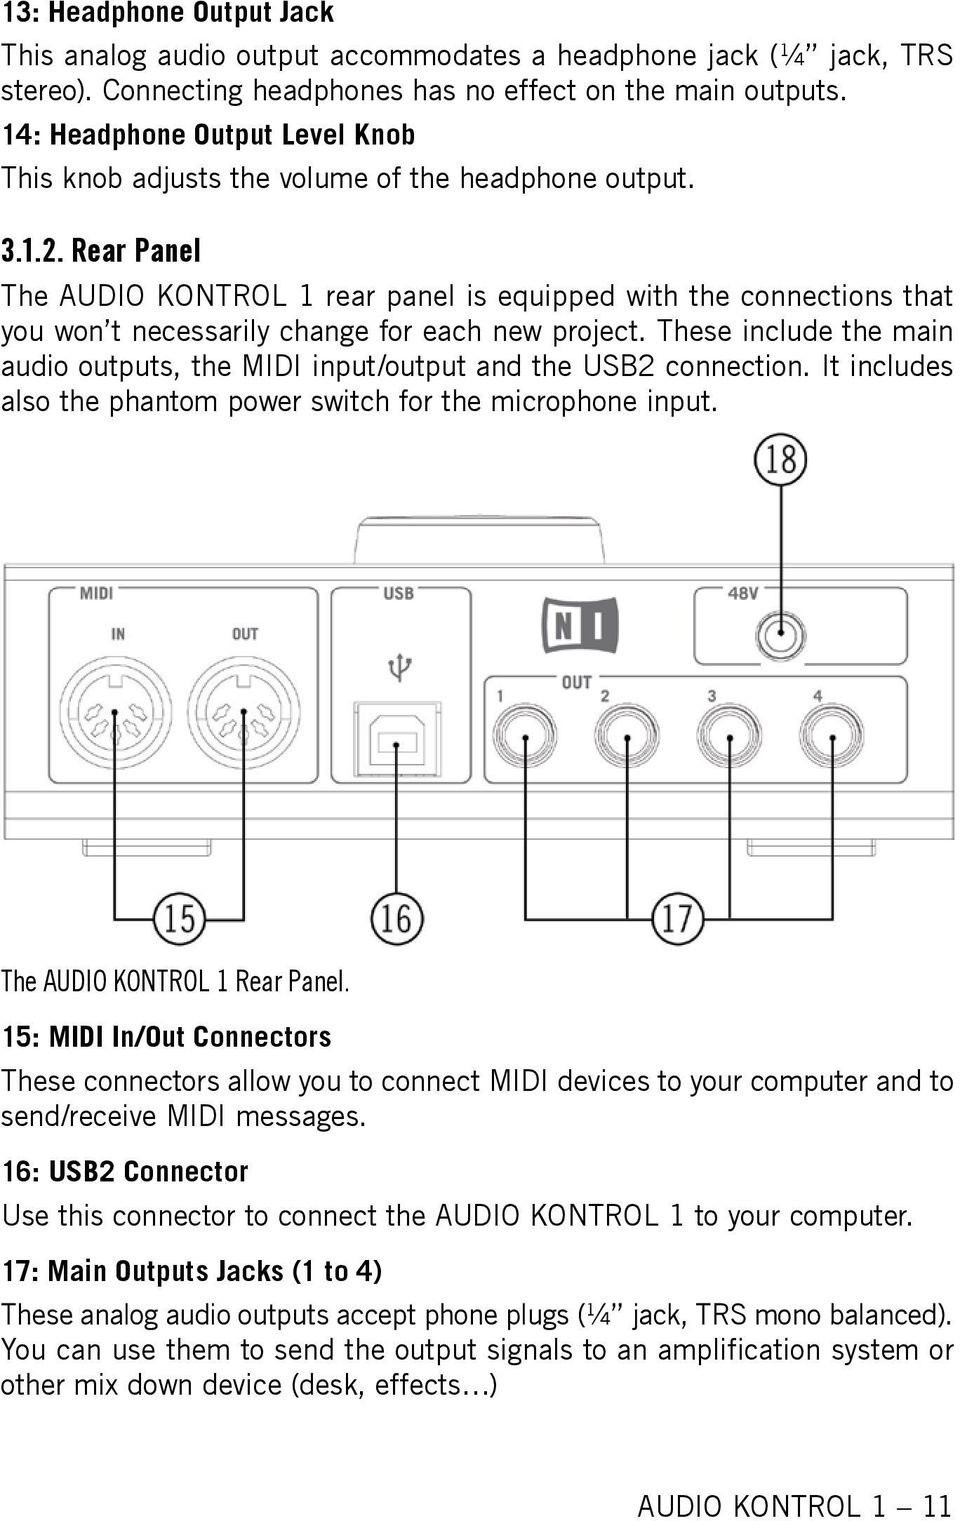 Audio Kontrol 1 Operation Manual Pdf Wiring A 4 Out Put Jack Rear Panel The Is Equipped With Connections That You Won